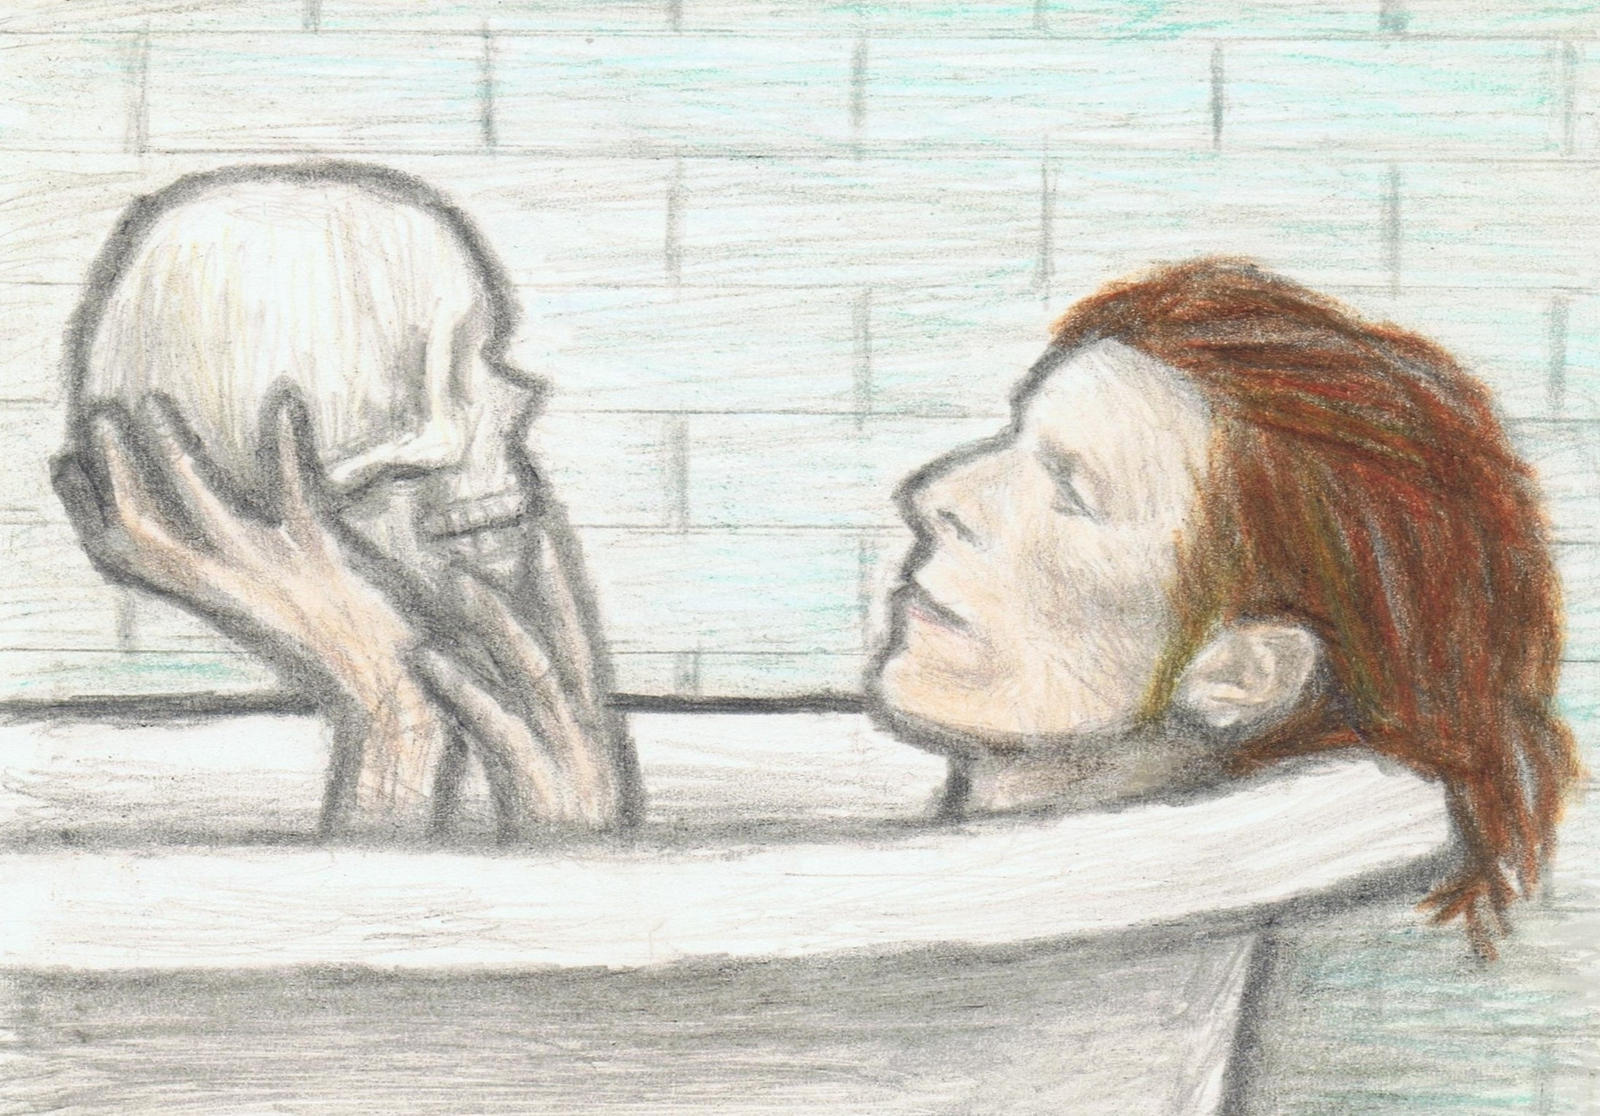 Cracked Actor in a bathtub by gagambo